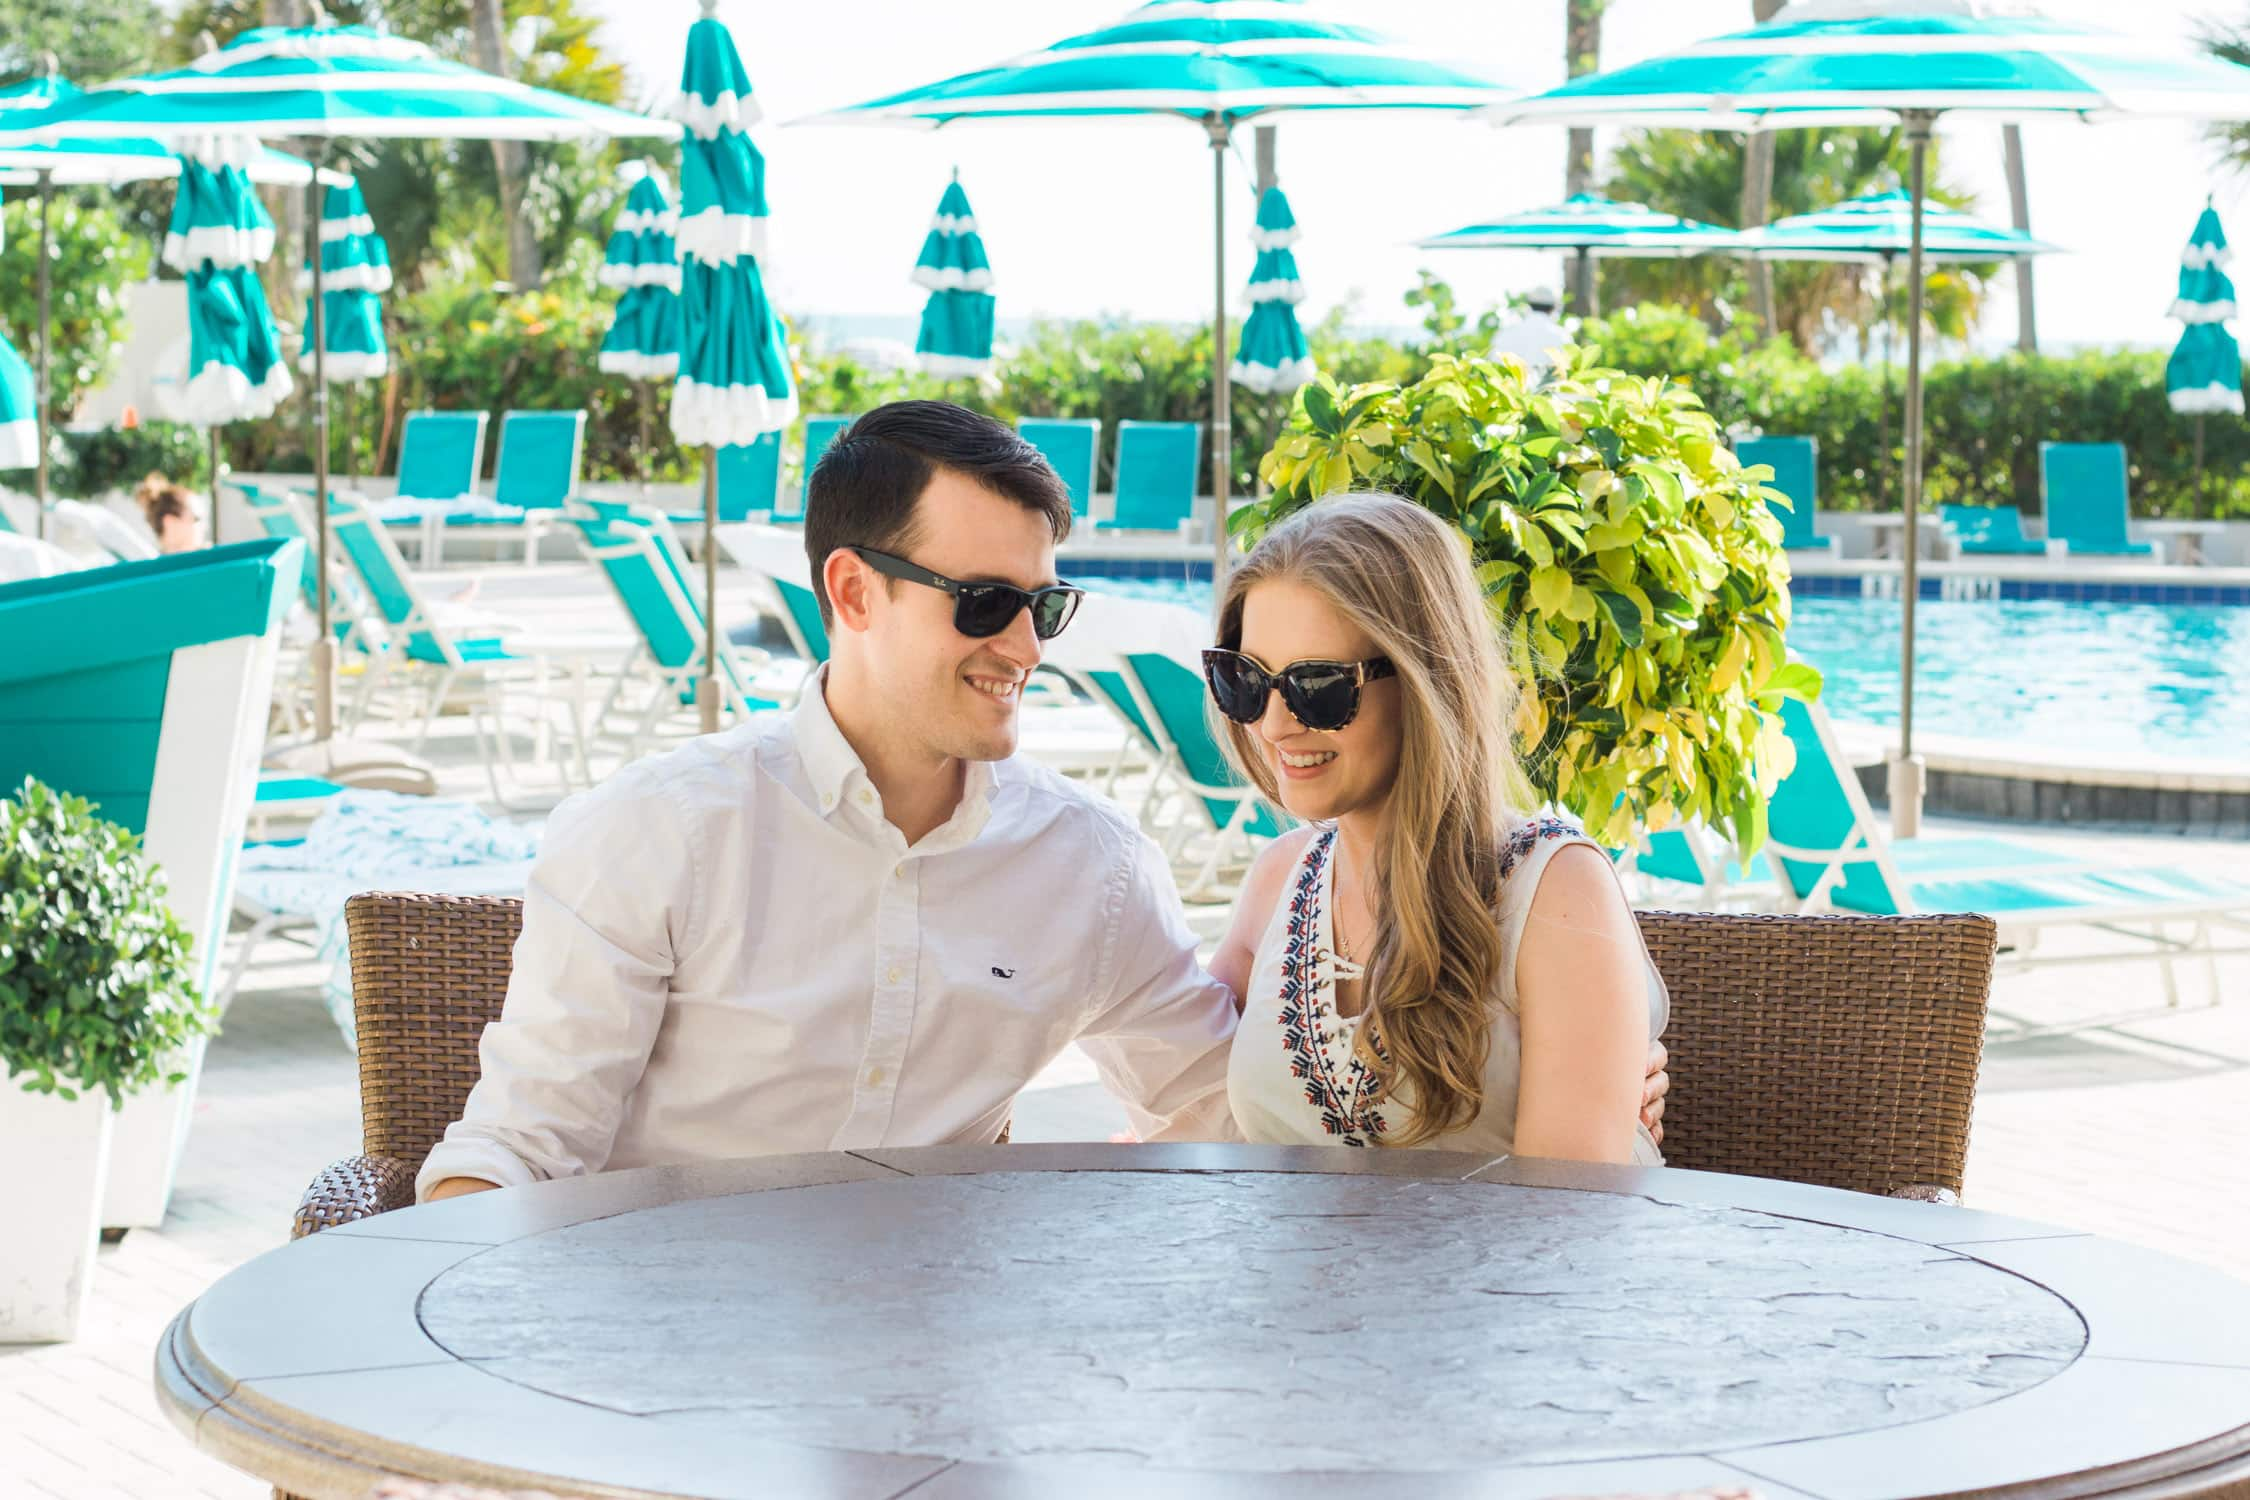 How to plan a romantic weekend getaway in Longboat Key, Florida, including a relaxing stay at The Resort at Longboat Key Club! #LoveFL sponsored by @visitflorida | day at the pool at The Resort at Longboat Key Club | Florida travel tips, beach vacation, vacation ideas, vacation goals, travel blogger Ashley Brooke Nicholas, Florida travel guide, Longboat Key travel guide, Sarasota travel guide, beautiful beaches, boating, affordable travel, US travel, summer vacation, spring break ideas, romantic vacation